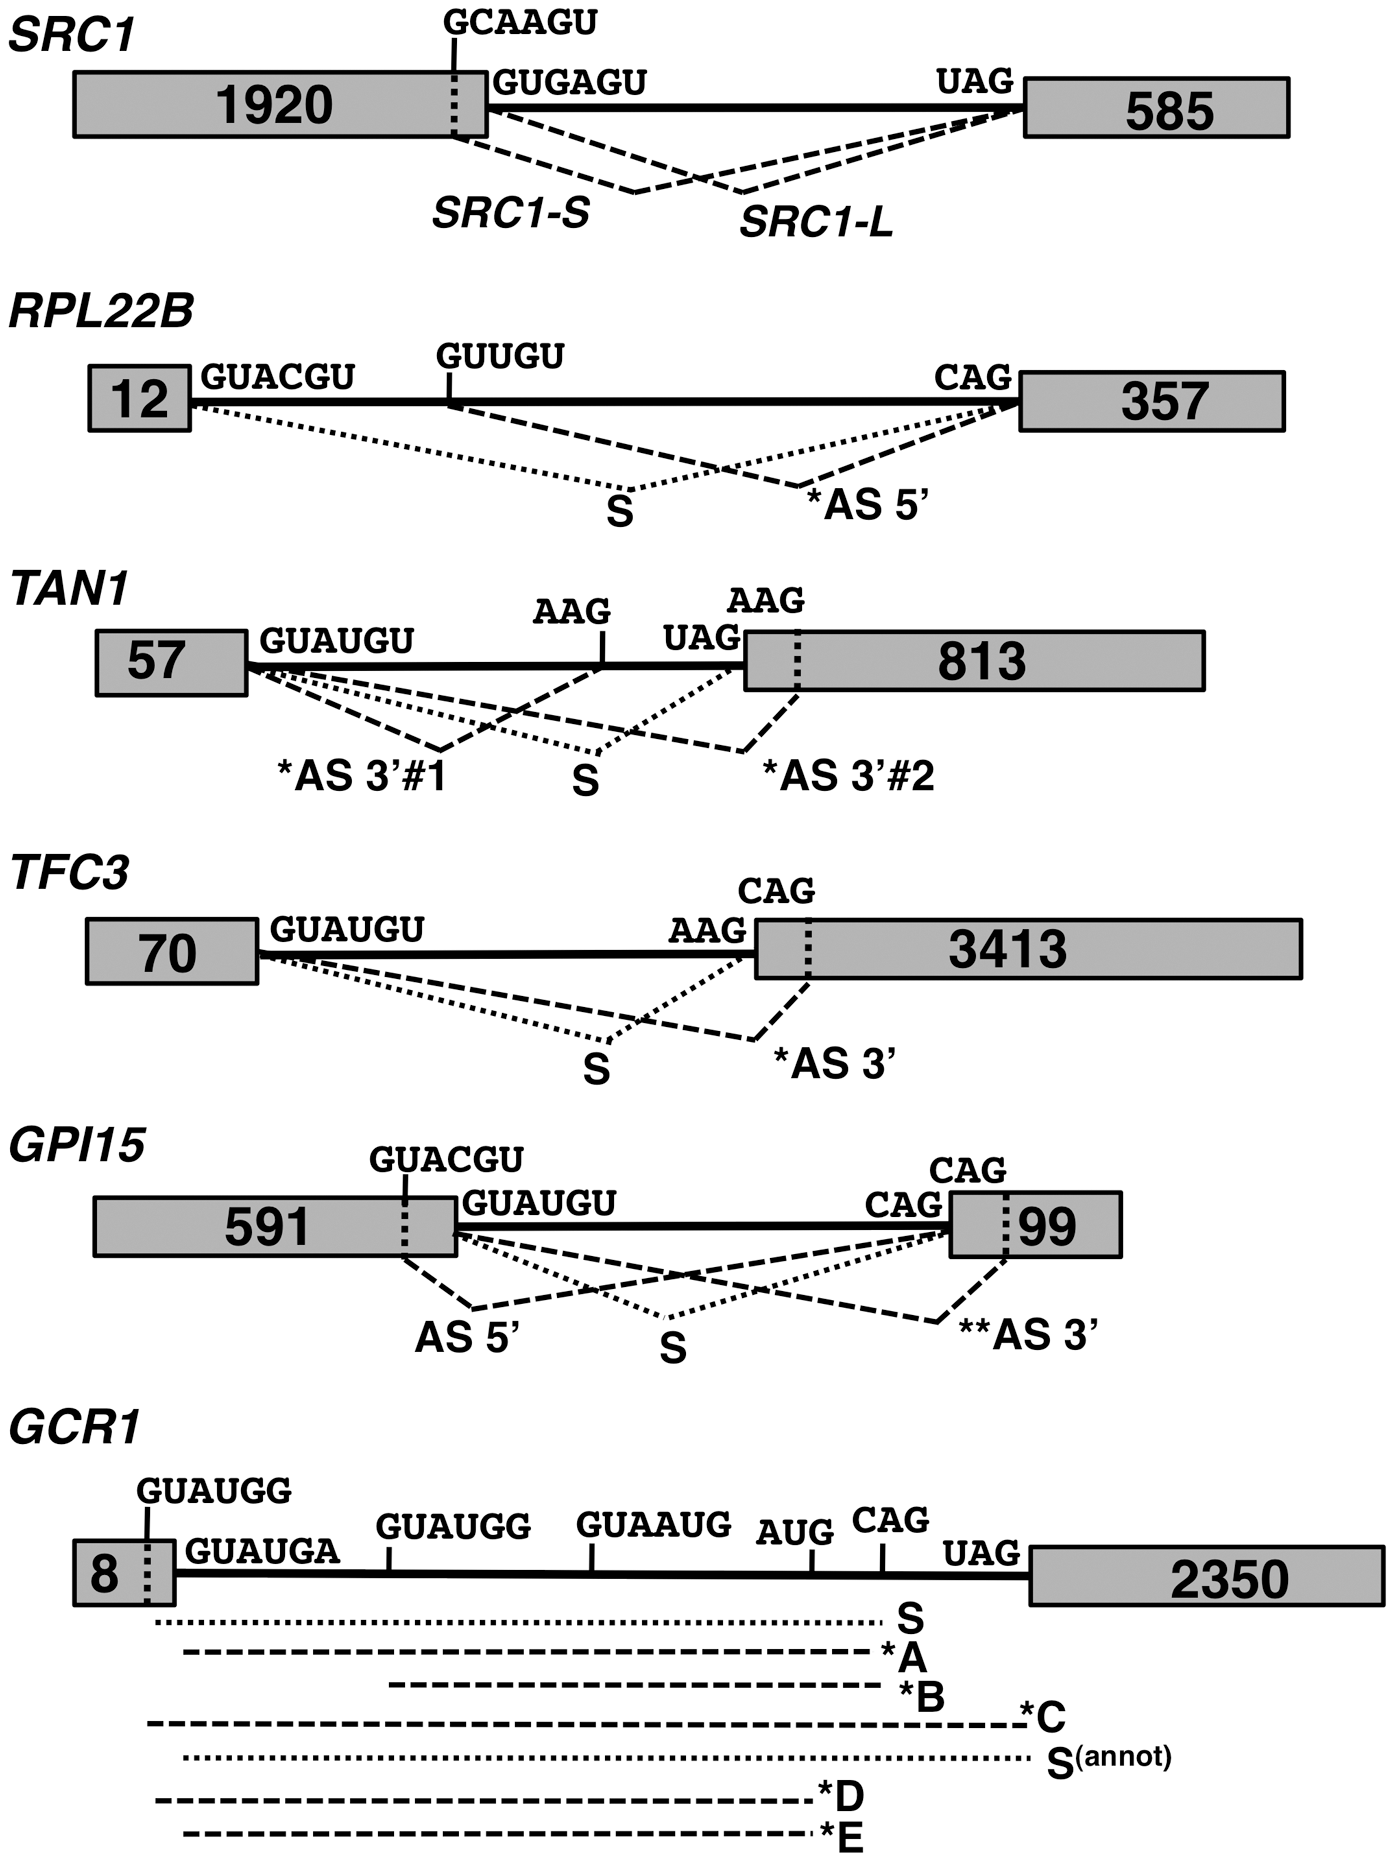 Spliced species produced from the <i>SRC1</i>, <i>RPL22B</i>, <i>TAN1</i>, <i>TFC3</i>, <i>GPI15</i> and <i>GCR1</i> genes.